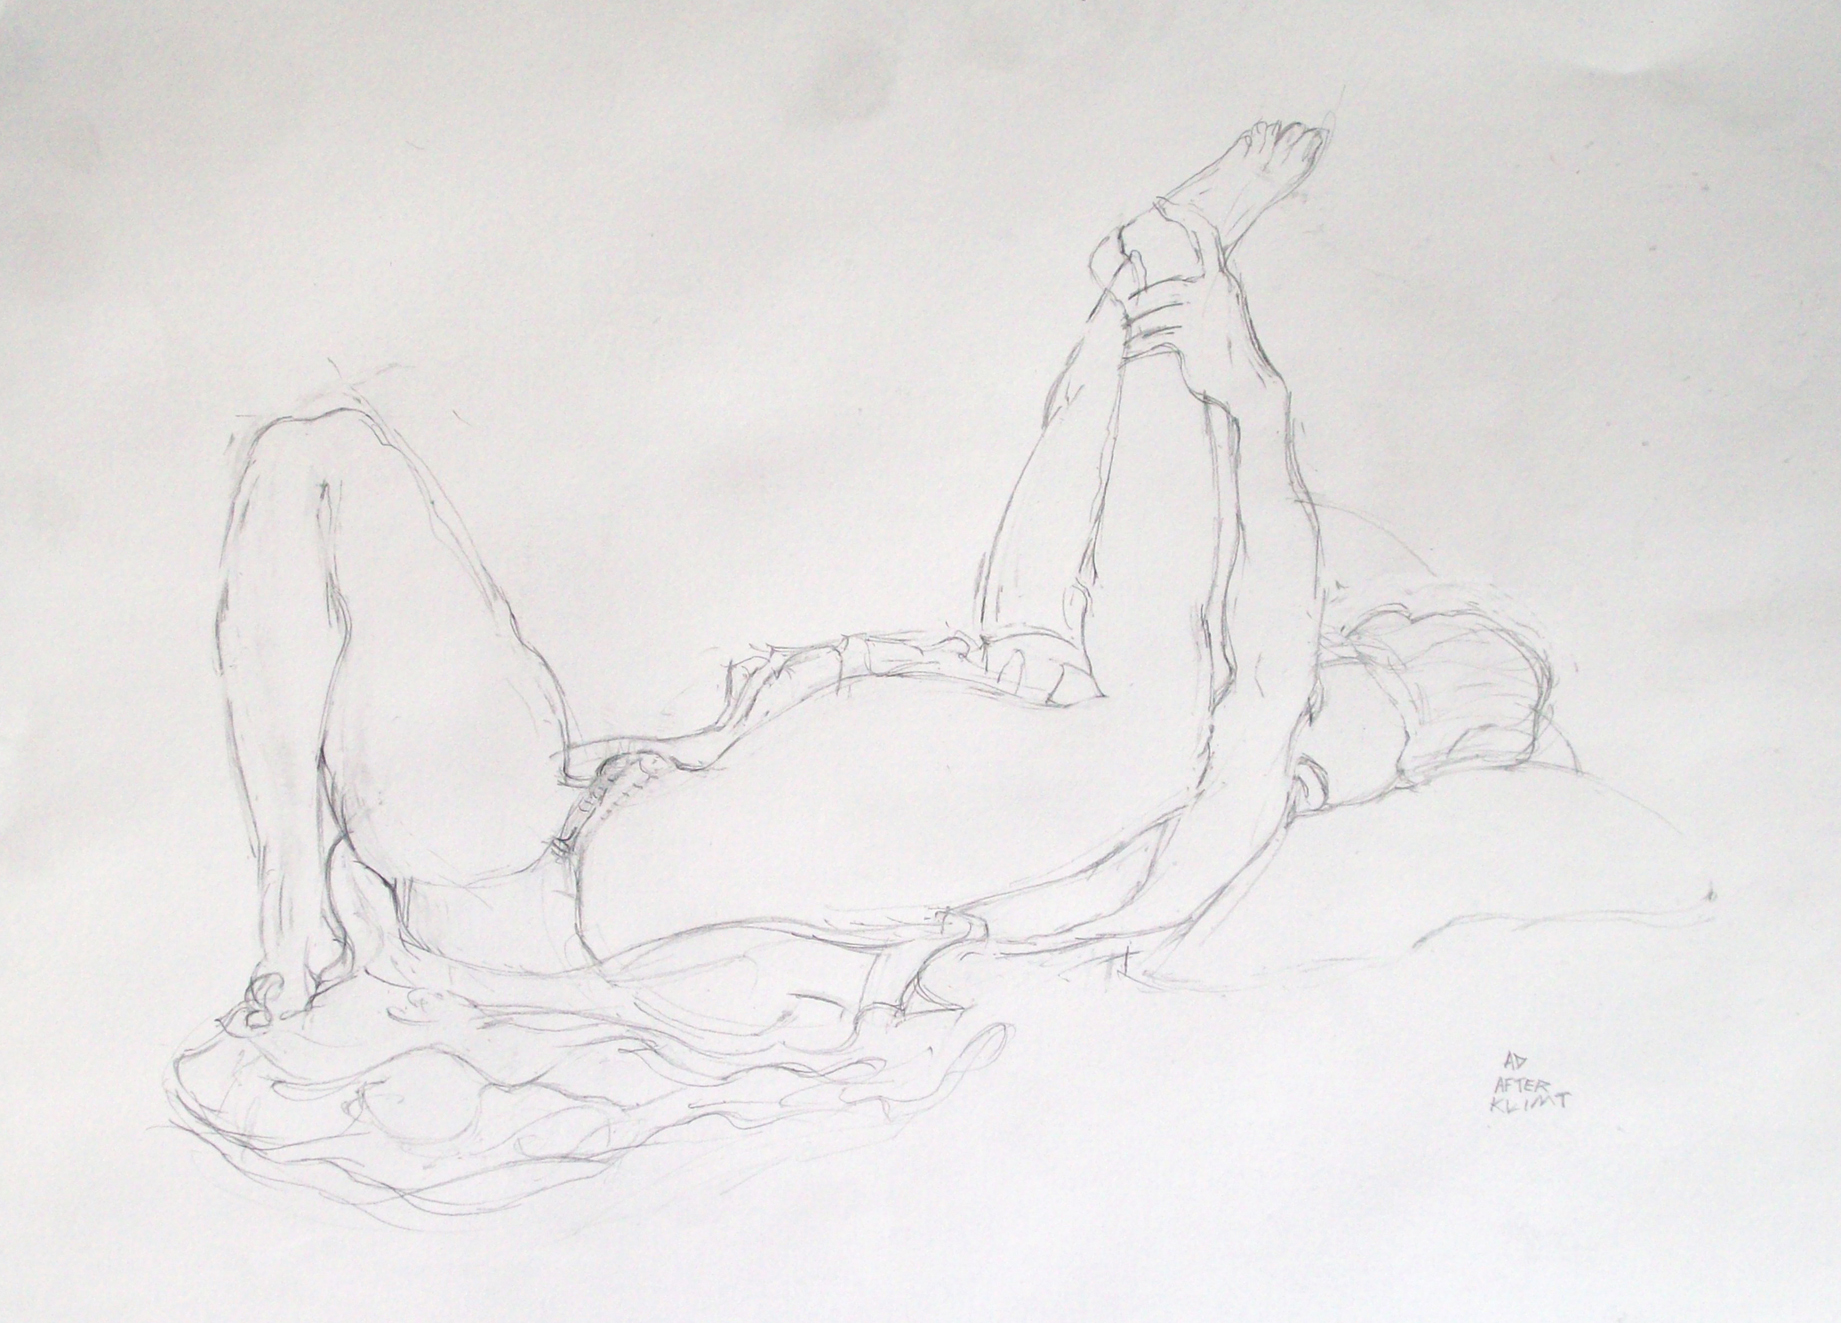 erotic drawing copy by alan dedman pornography